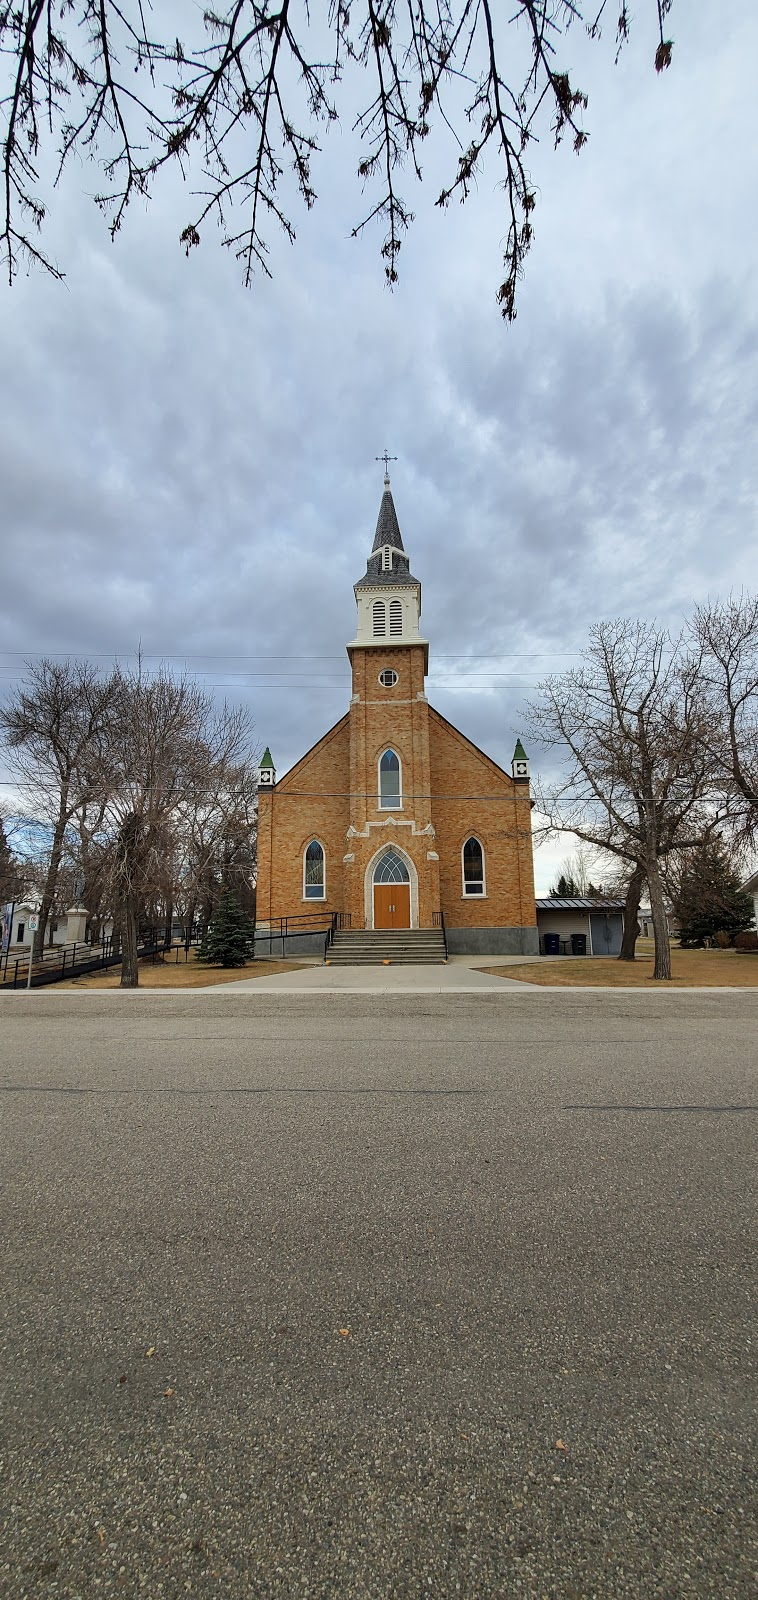 Sacred Heart Roman Cthlc Chr | church | 515 2nd St E, Montmartre, SK S0G 3M0, Canada | 3064242026 OR +1 306-424-2026